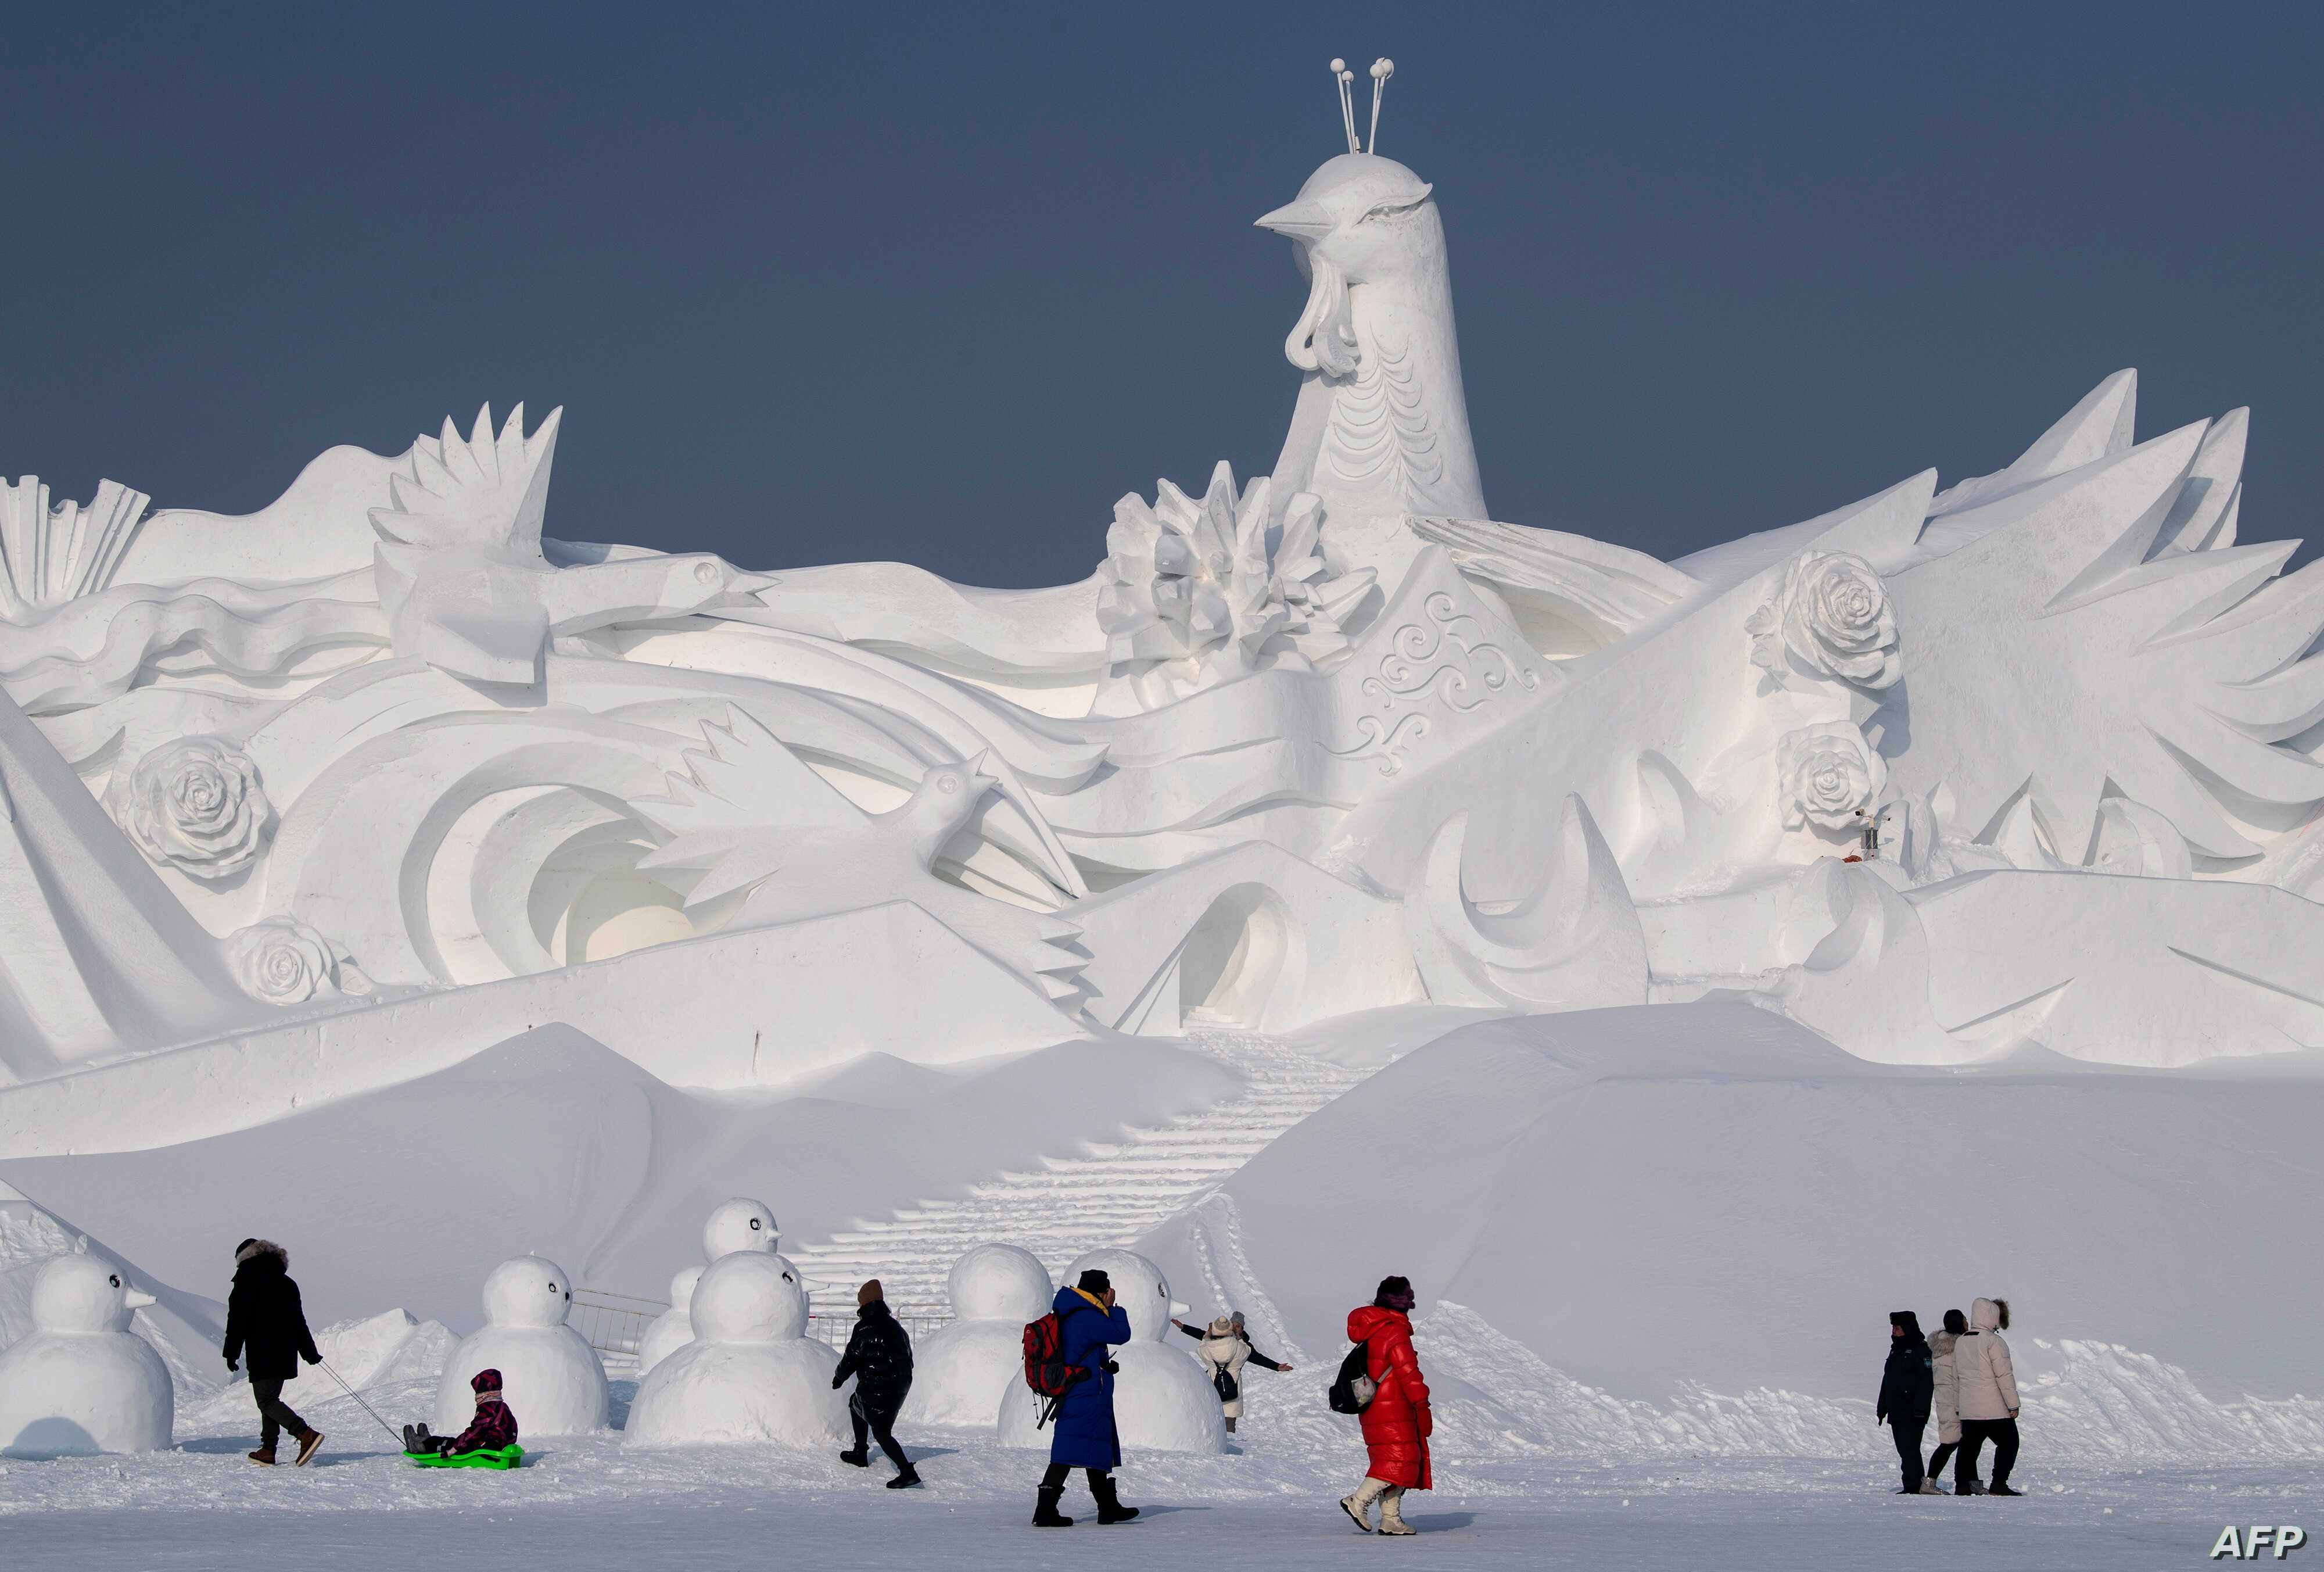 Tourists walk in front of an ice sculpture ahead of the opening of the Harbin International Snow and Sculpture Festival in Harbin, in China's northeast Heilongjiang province, Jan. 4, 2020.